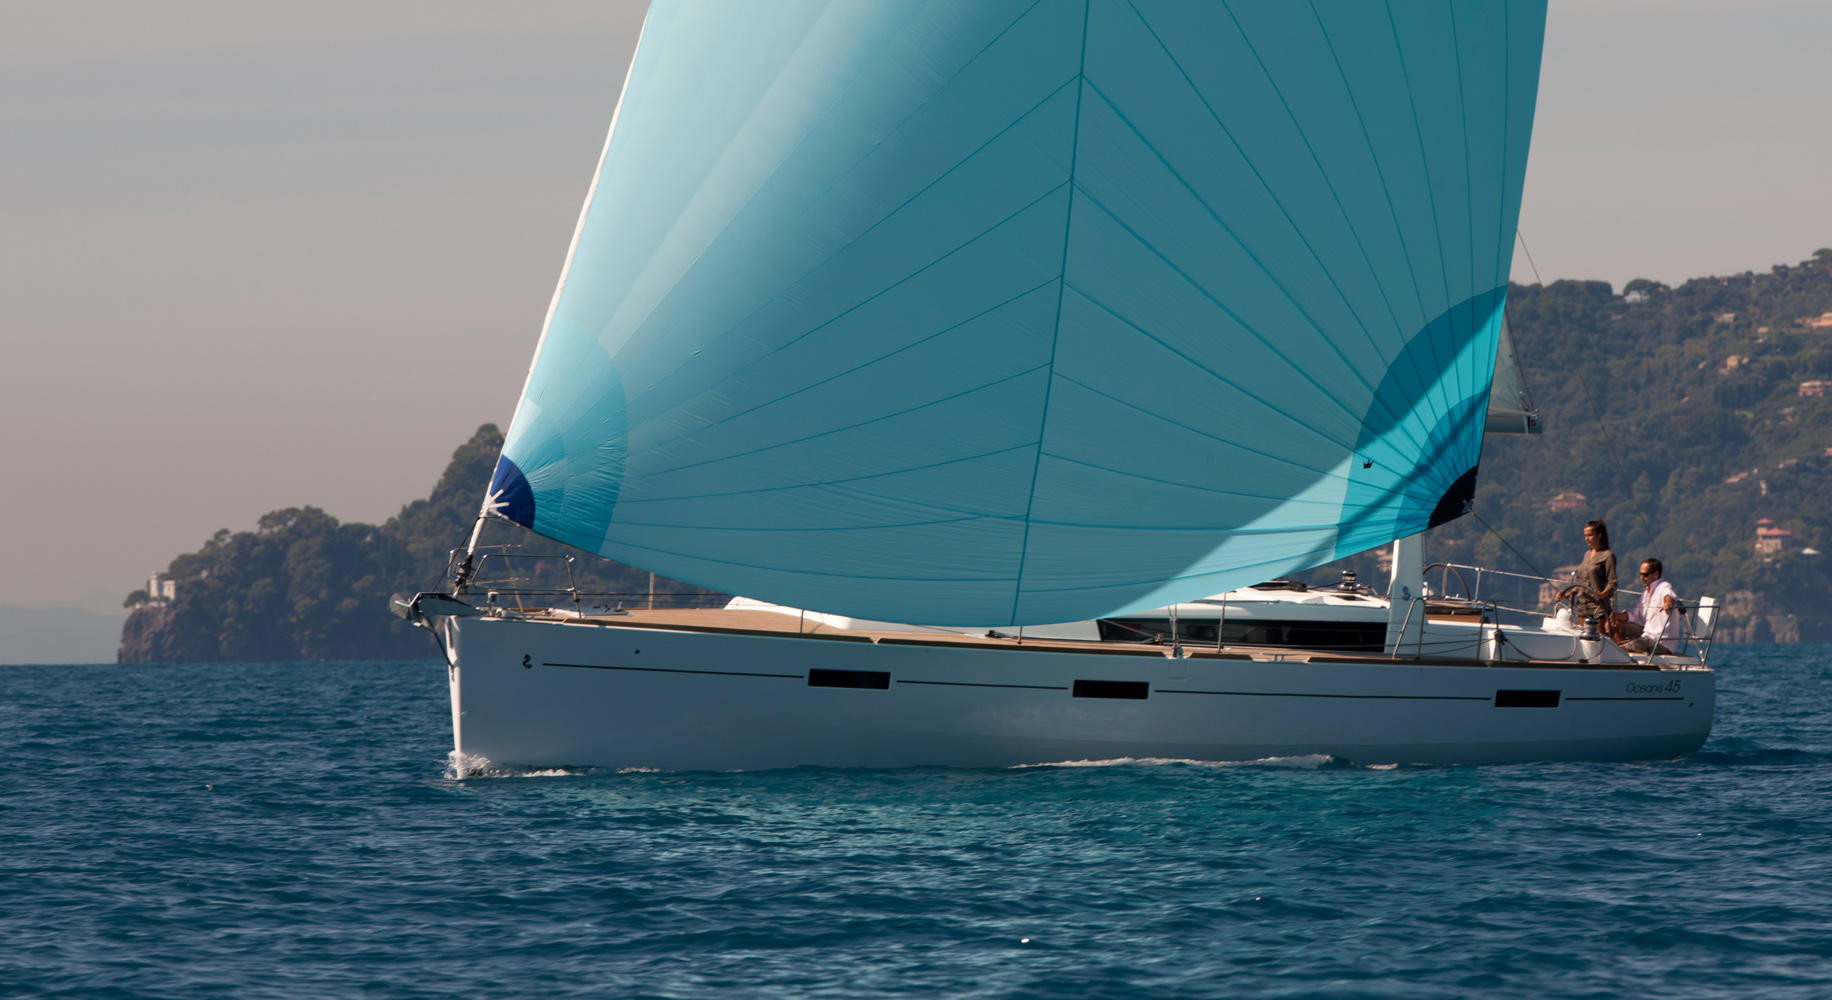 oceanis45 barca 2019 Isole Eolie